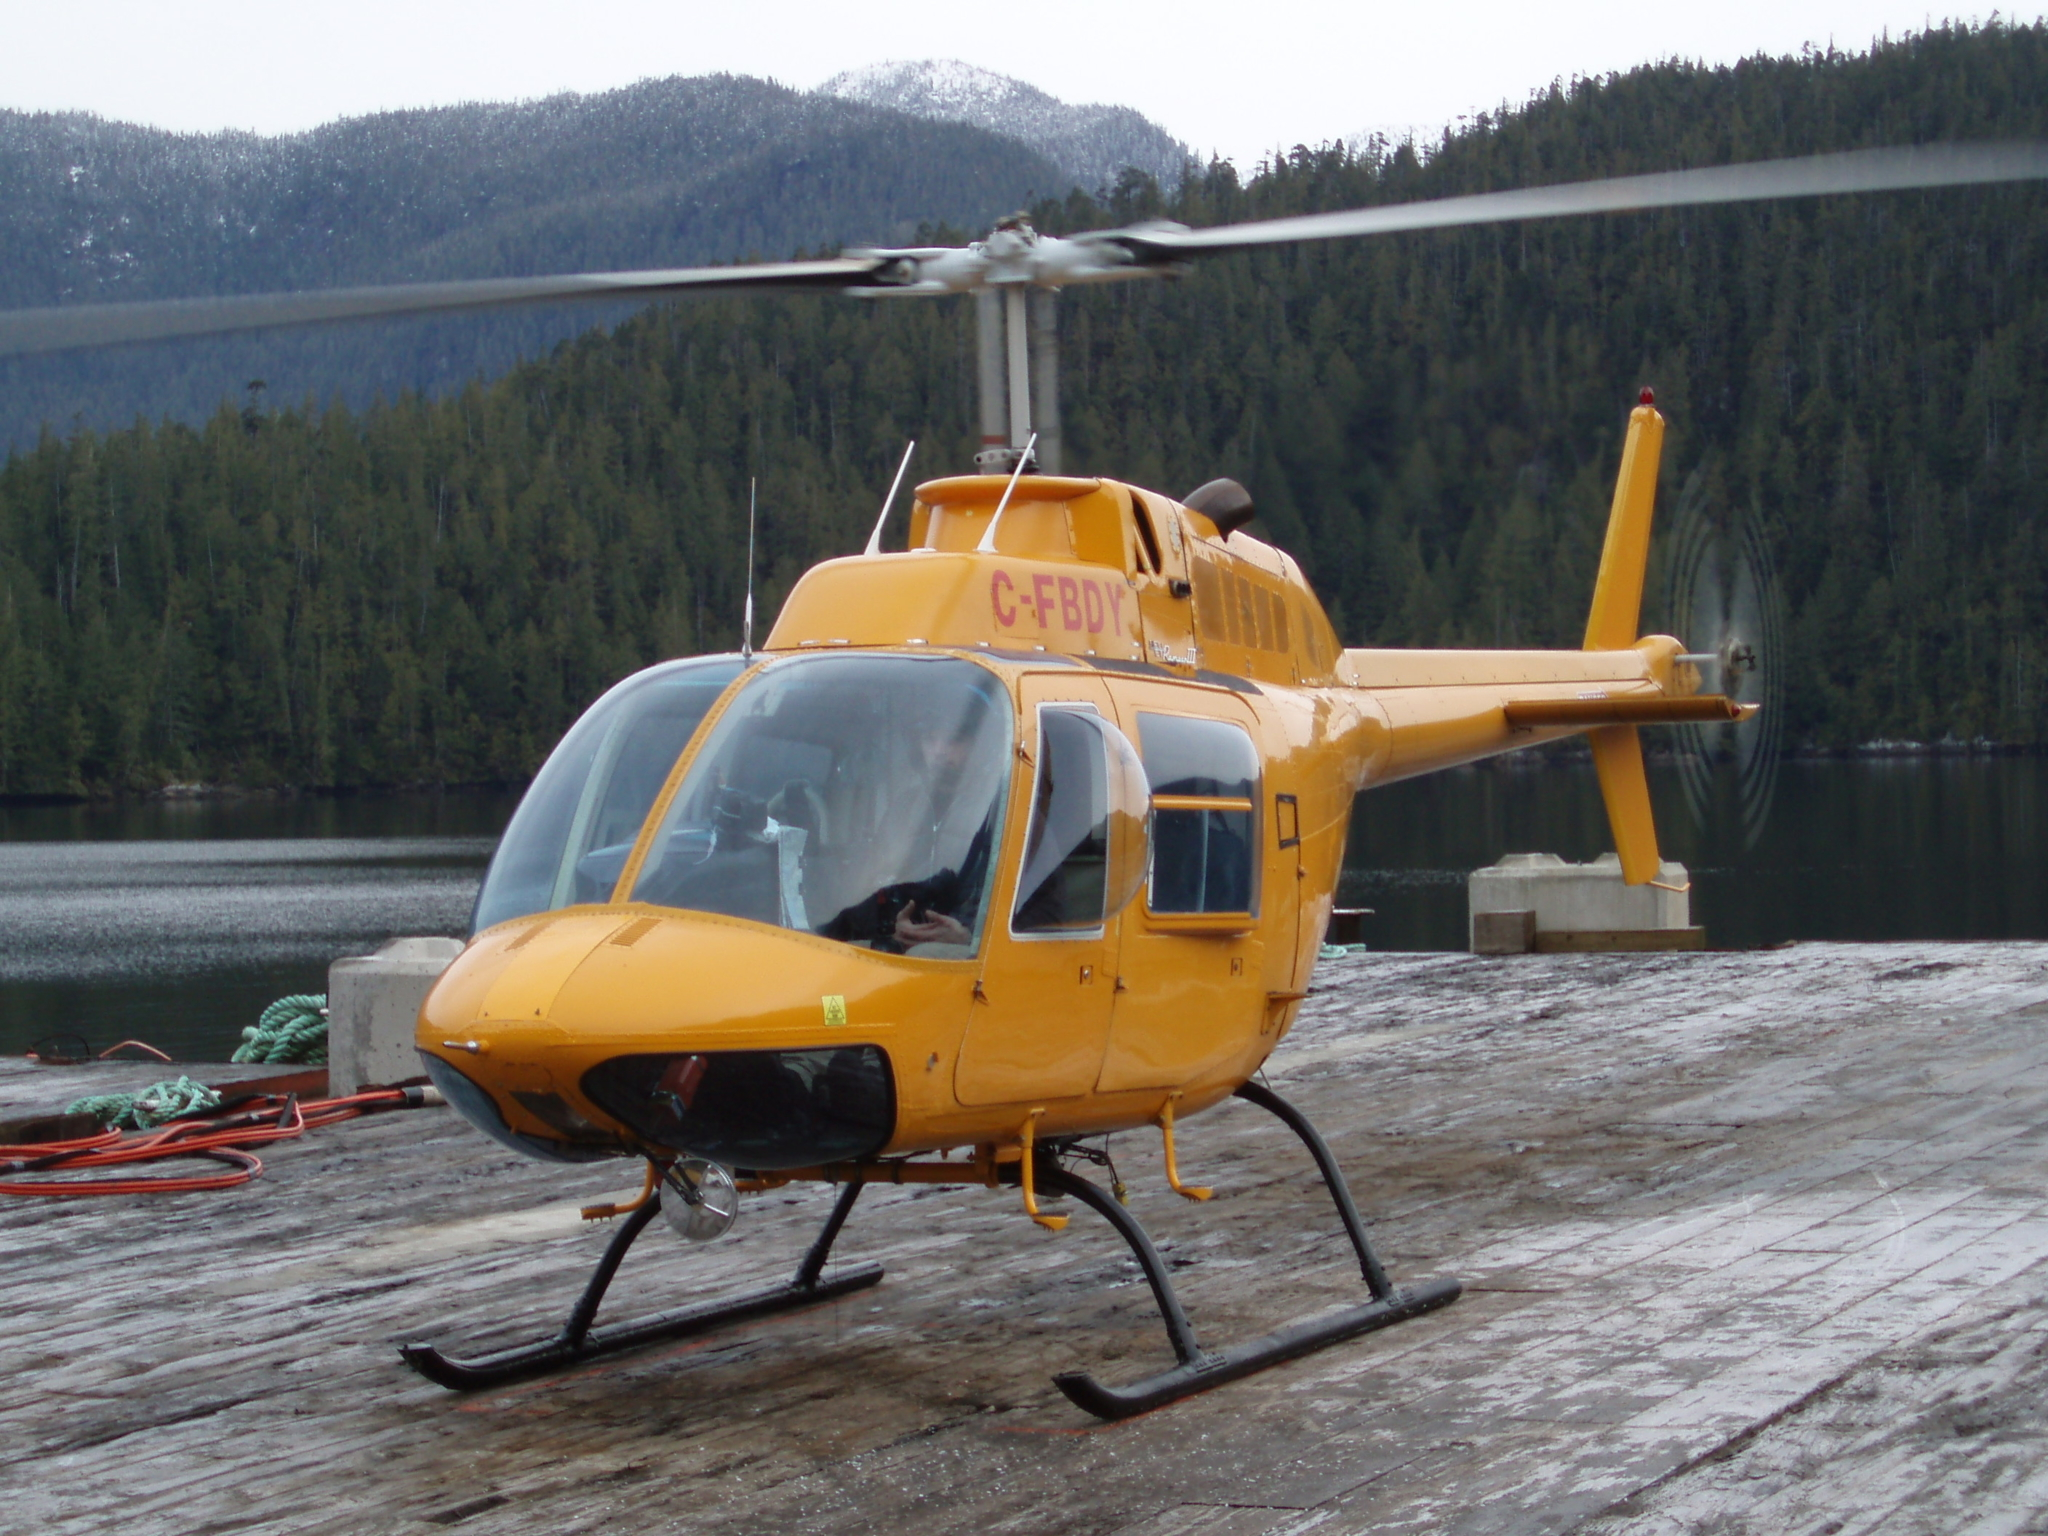 Pacific International Log Trading Inc in Delta: We have two Bell 206 helicopters to support our helicopter logging crews.